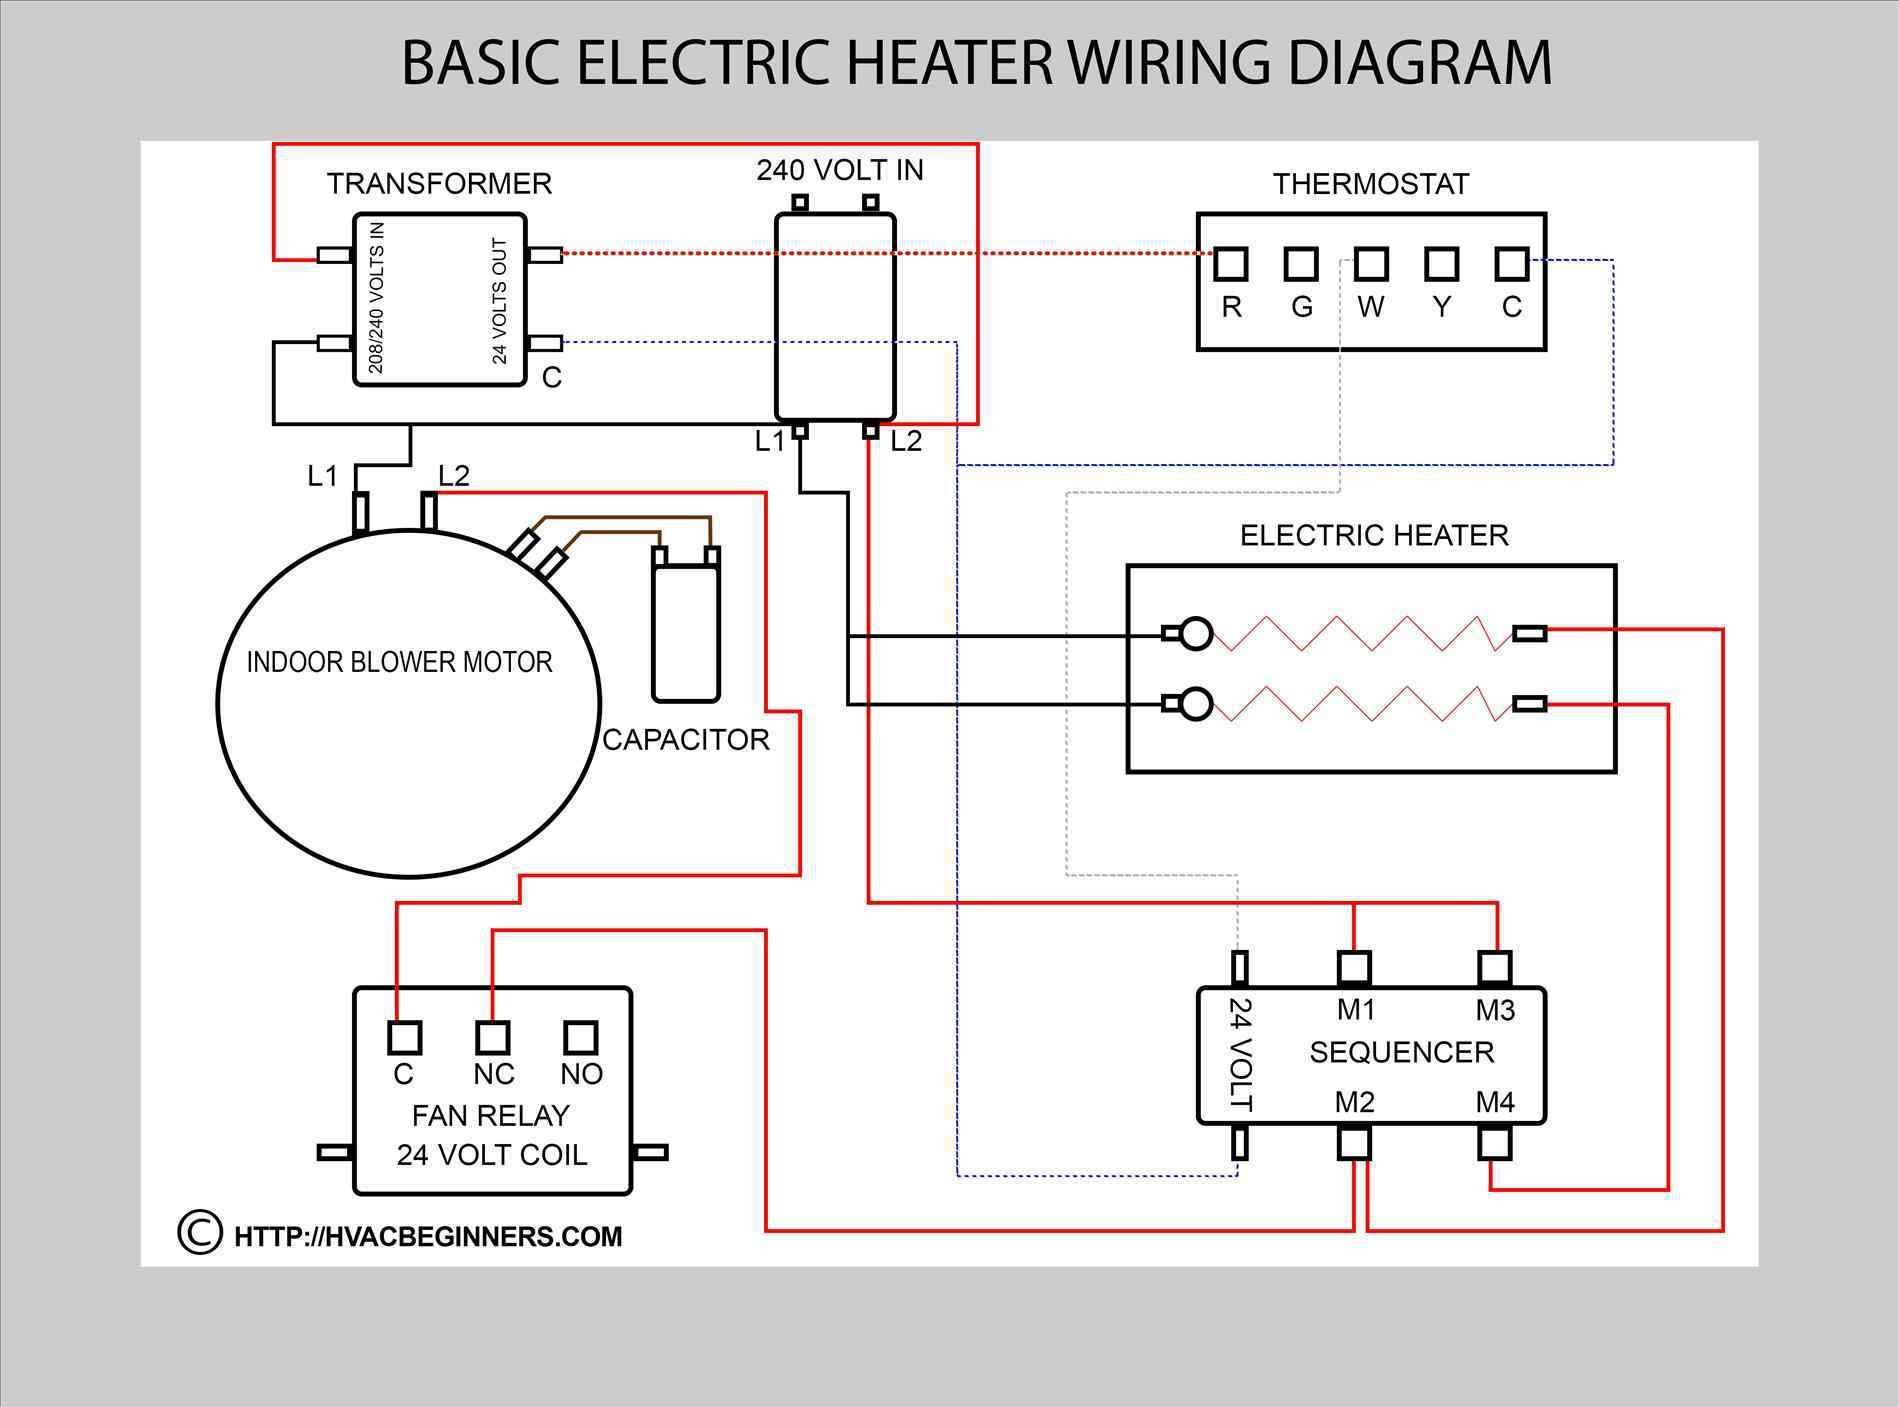 Ground Pool Electrical Wiring Diagram Lovely Charming Pool Heater Diagram Inspiration Electrical and